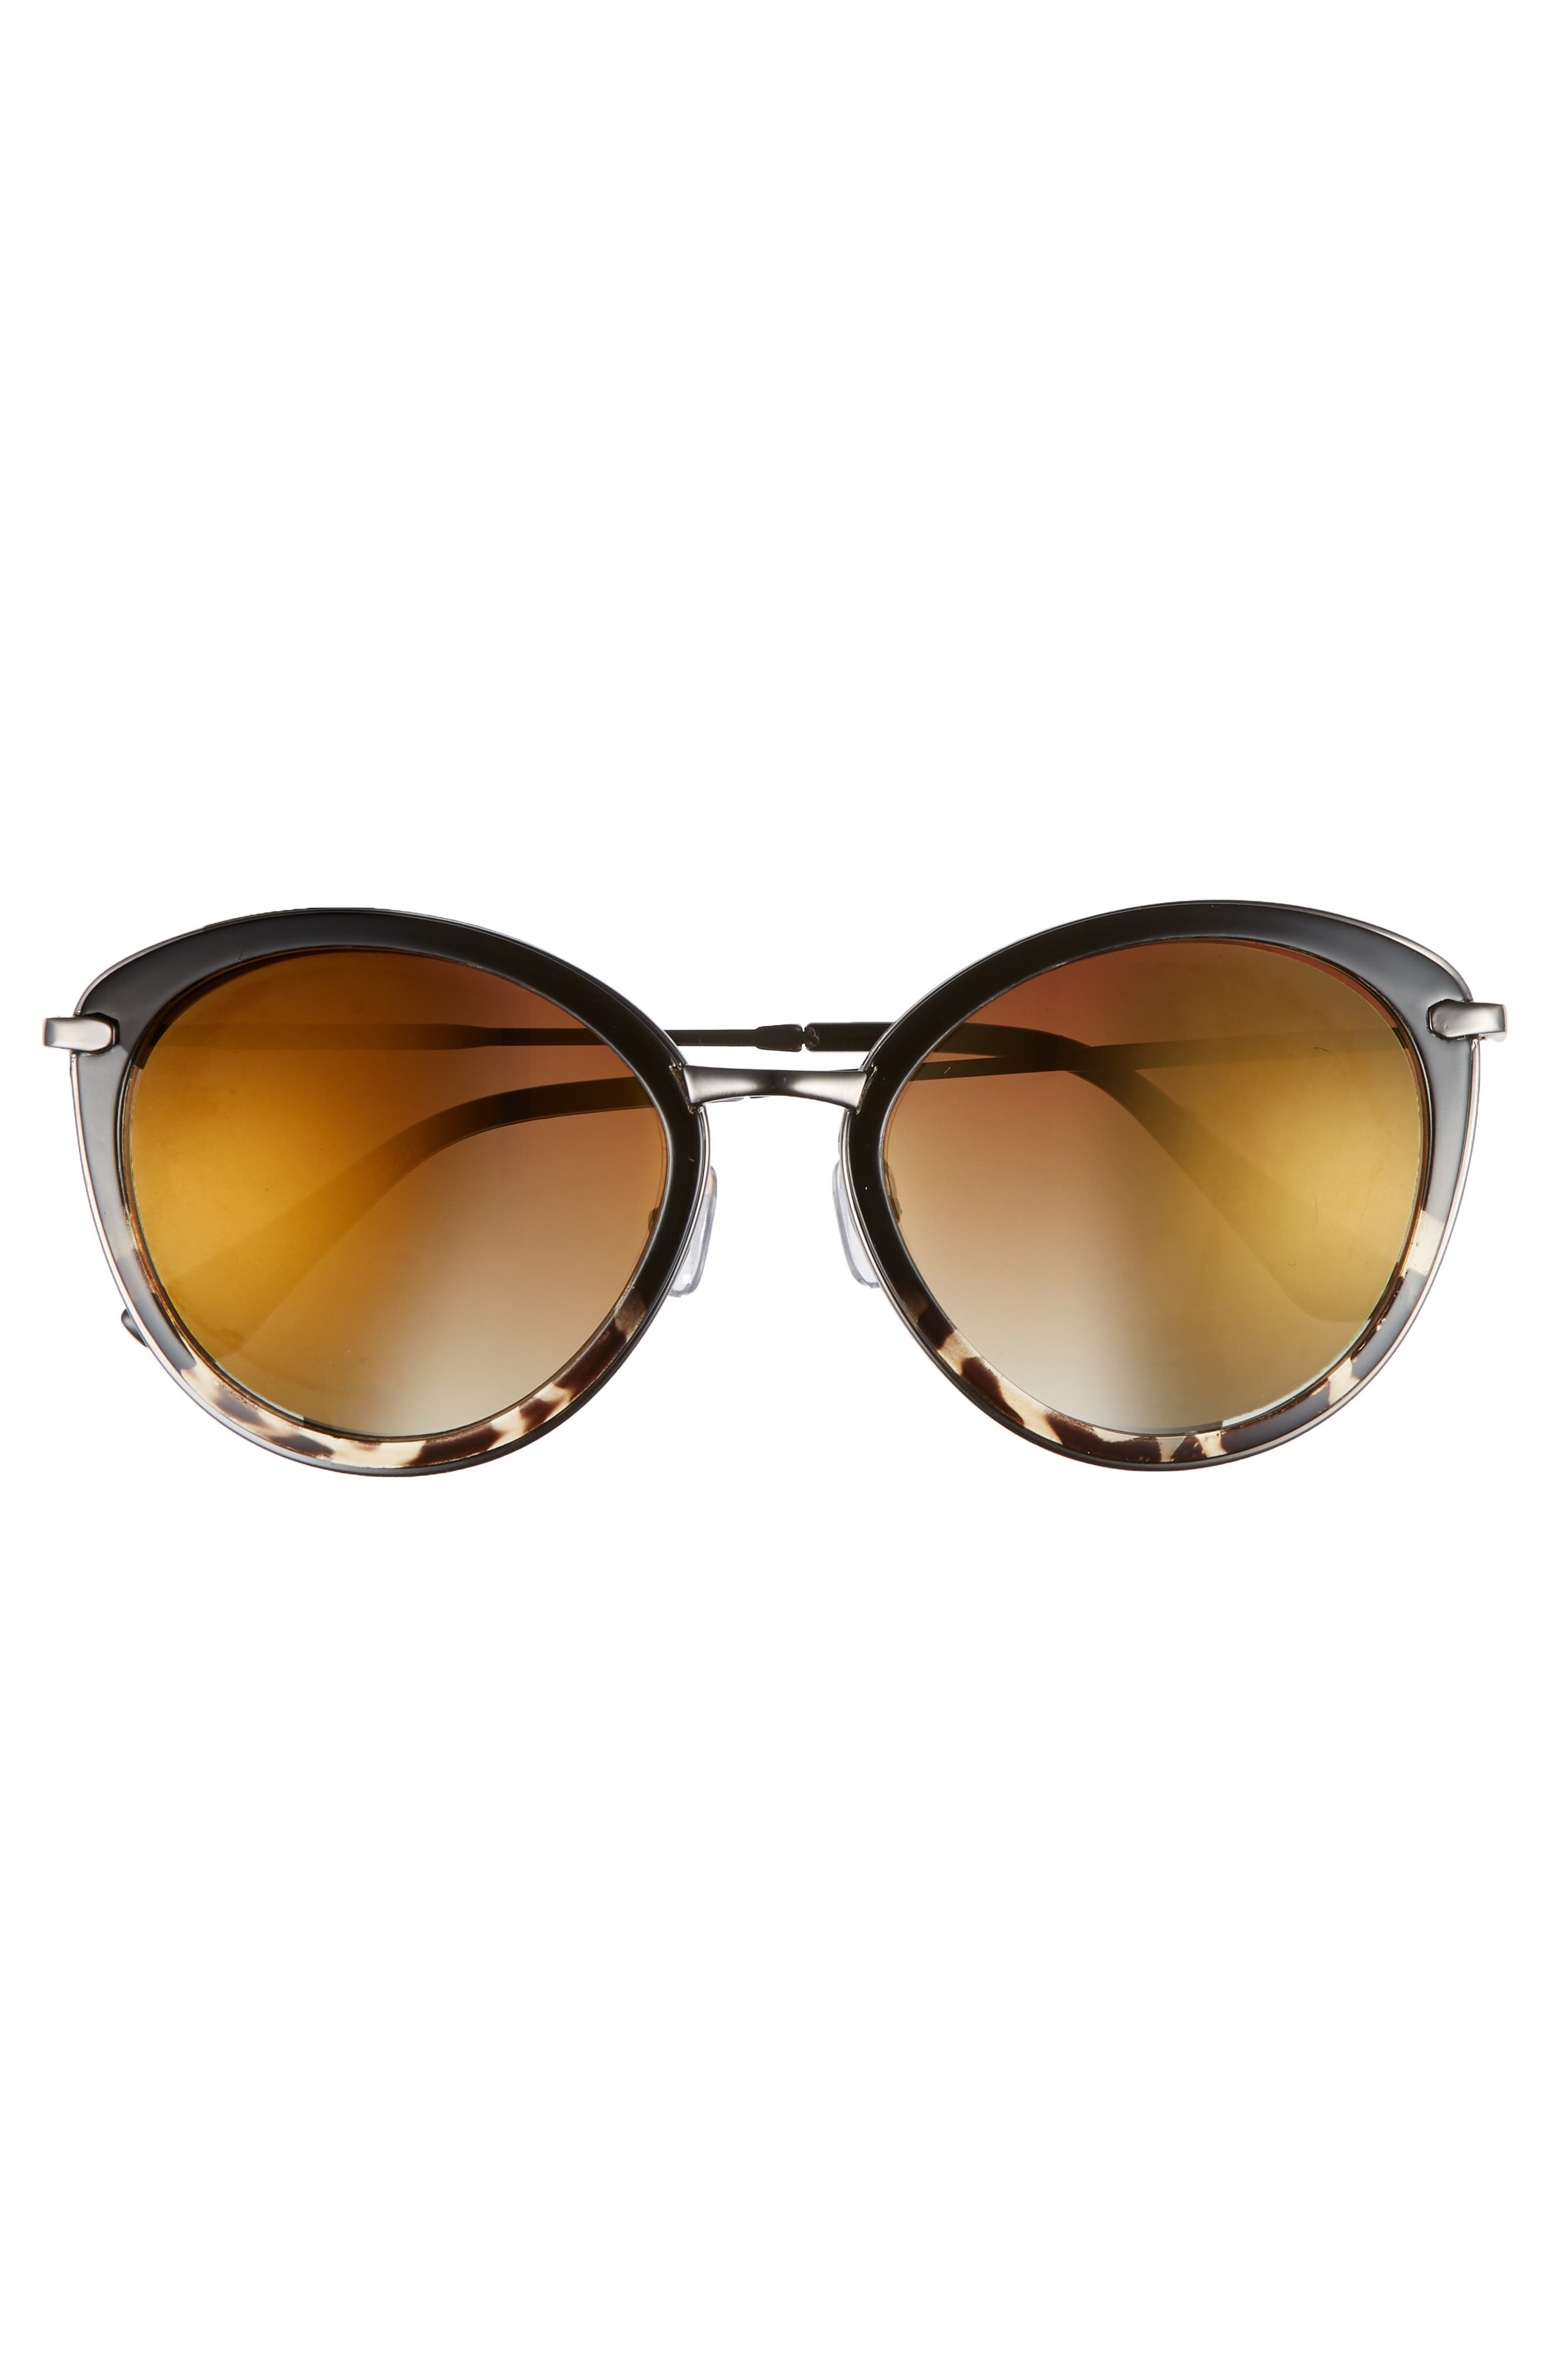 54mm Round Sunglasses,                             Alternate thumbnail 3, color,                             001